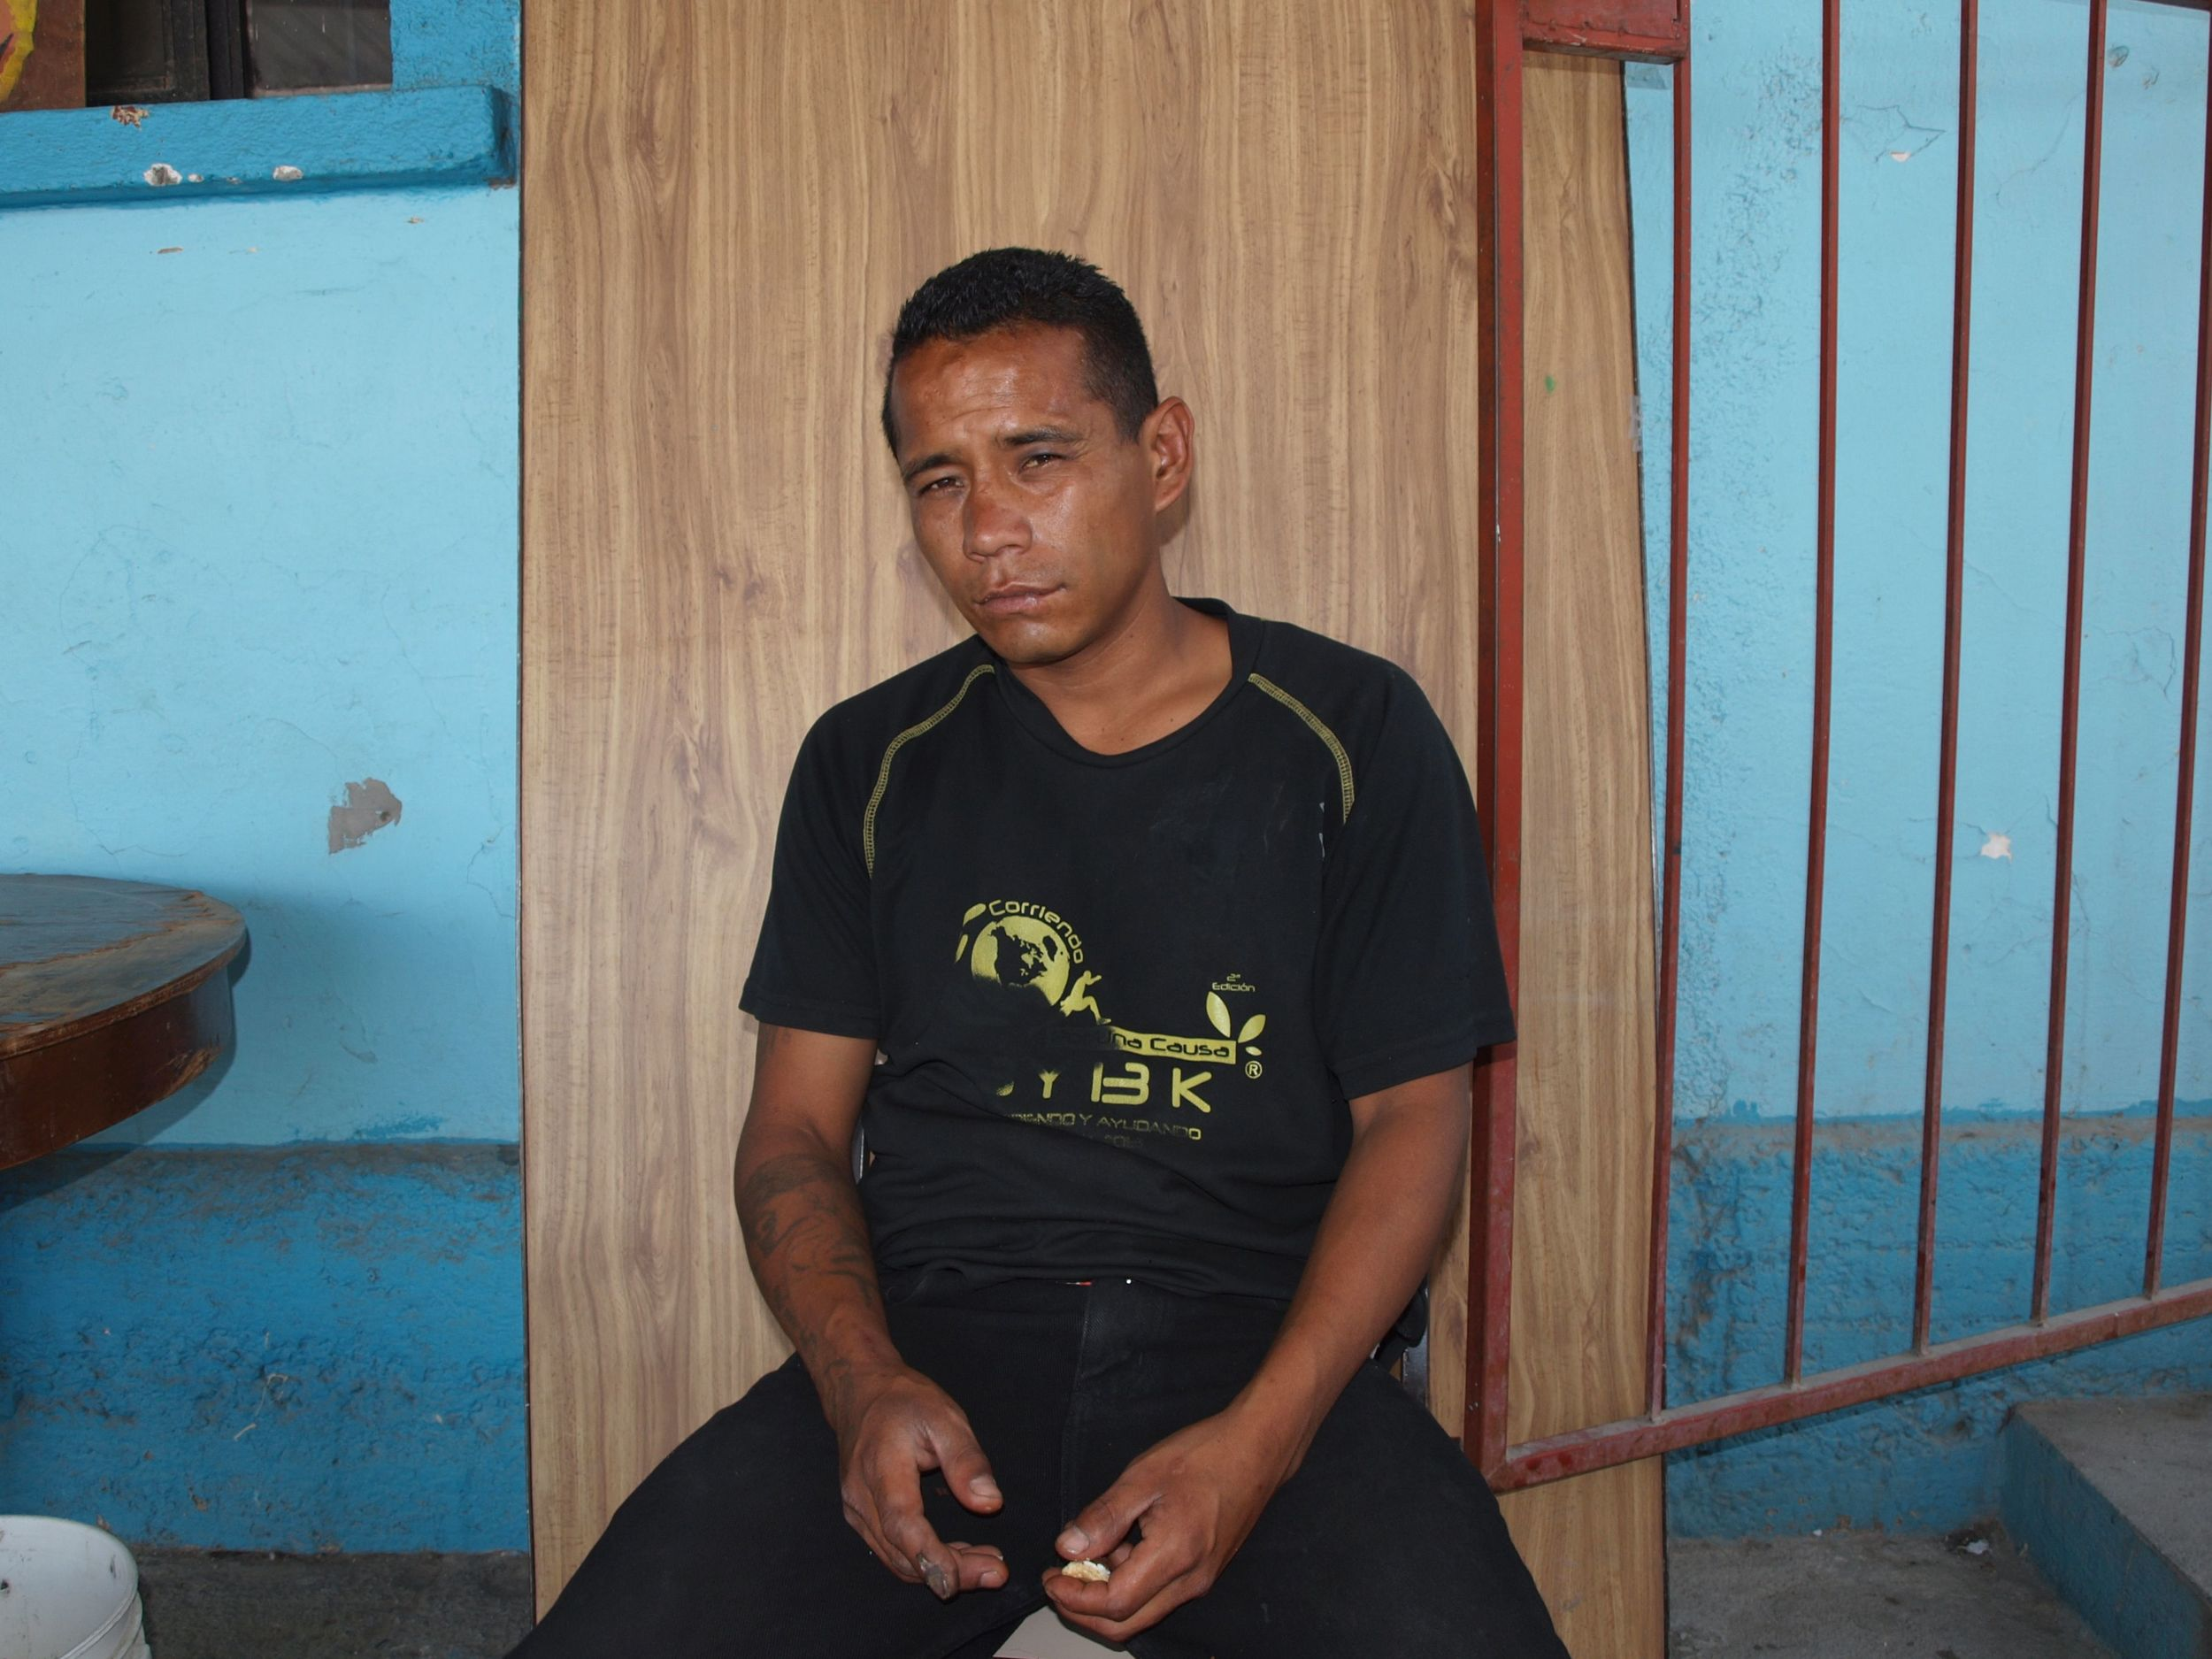 José Noel fell off a train en route to the US and rolled along the track several times. He says his back is injured but he is afraid to go to the hospital.